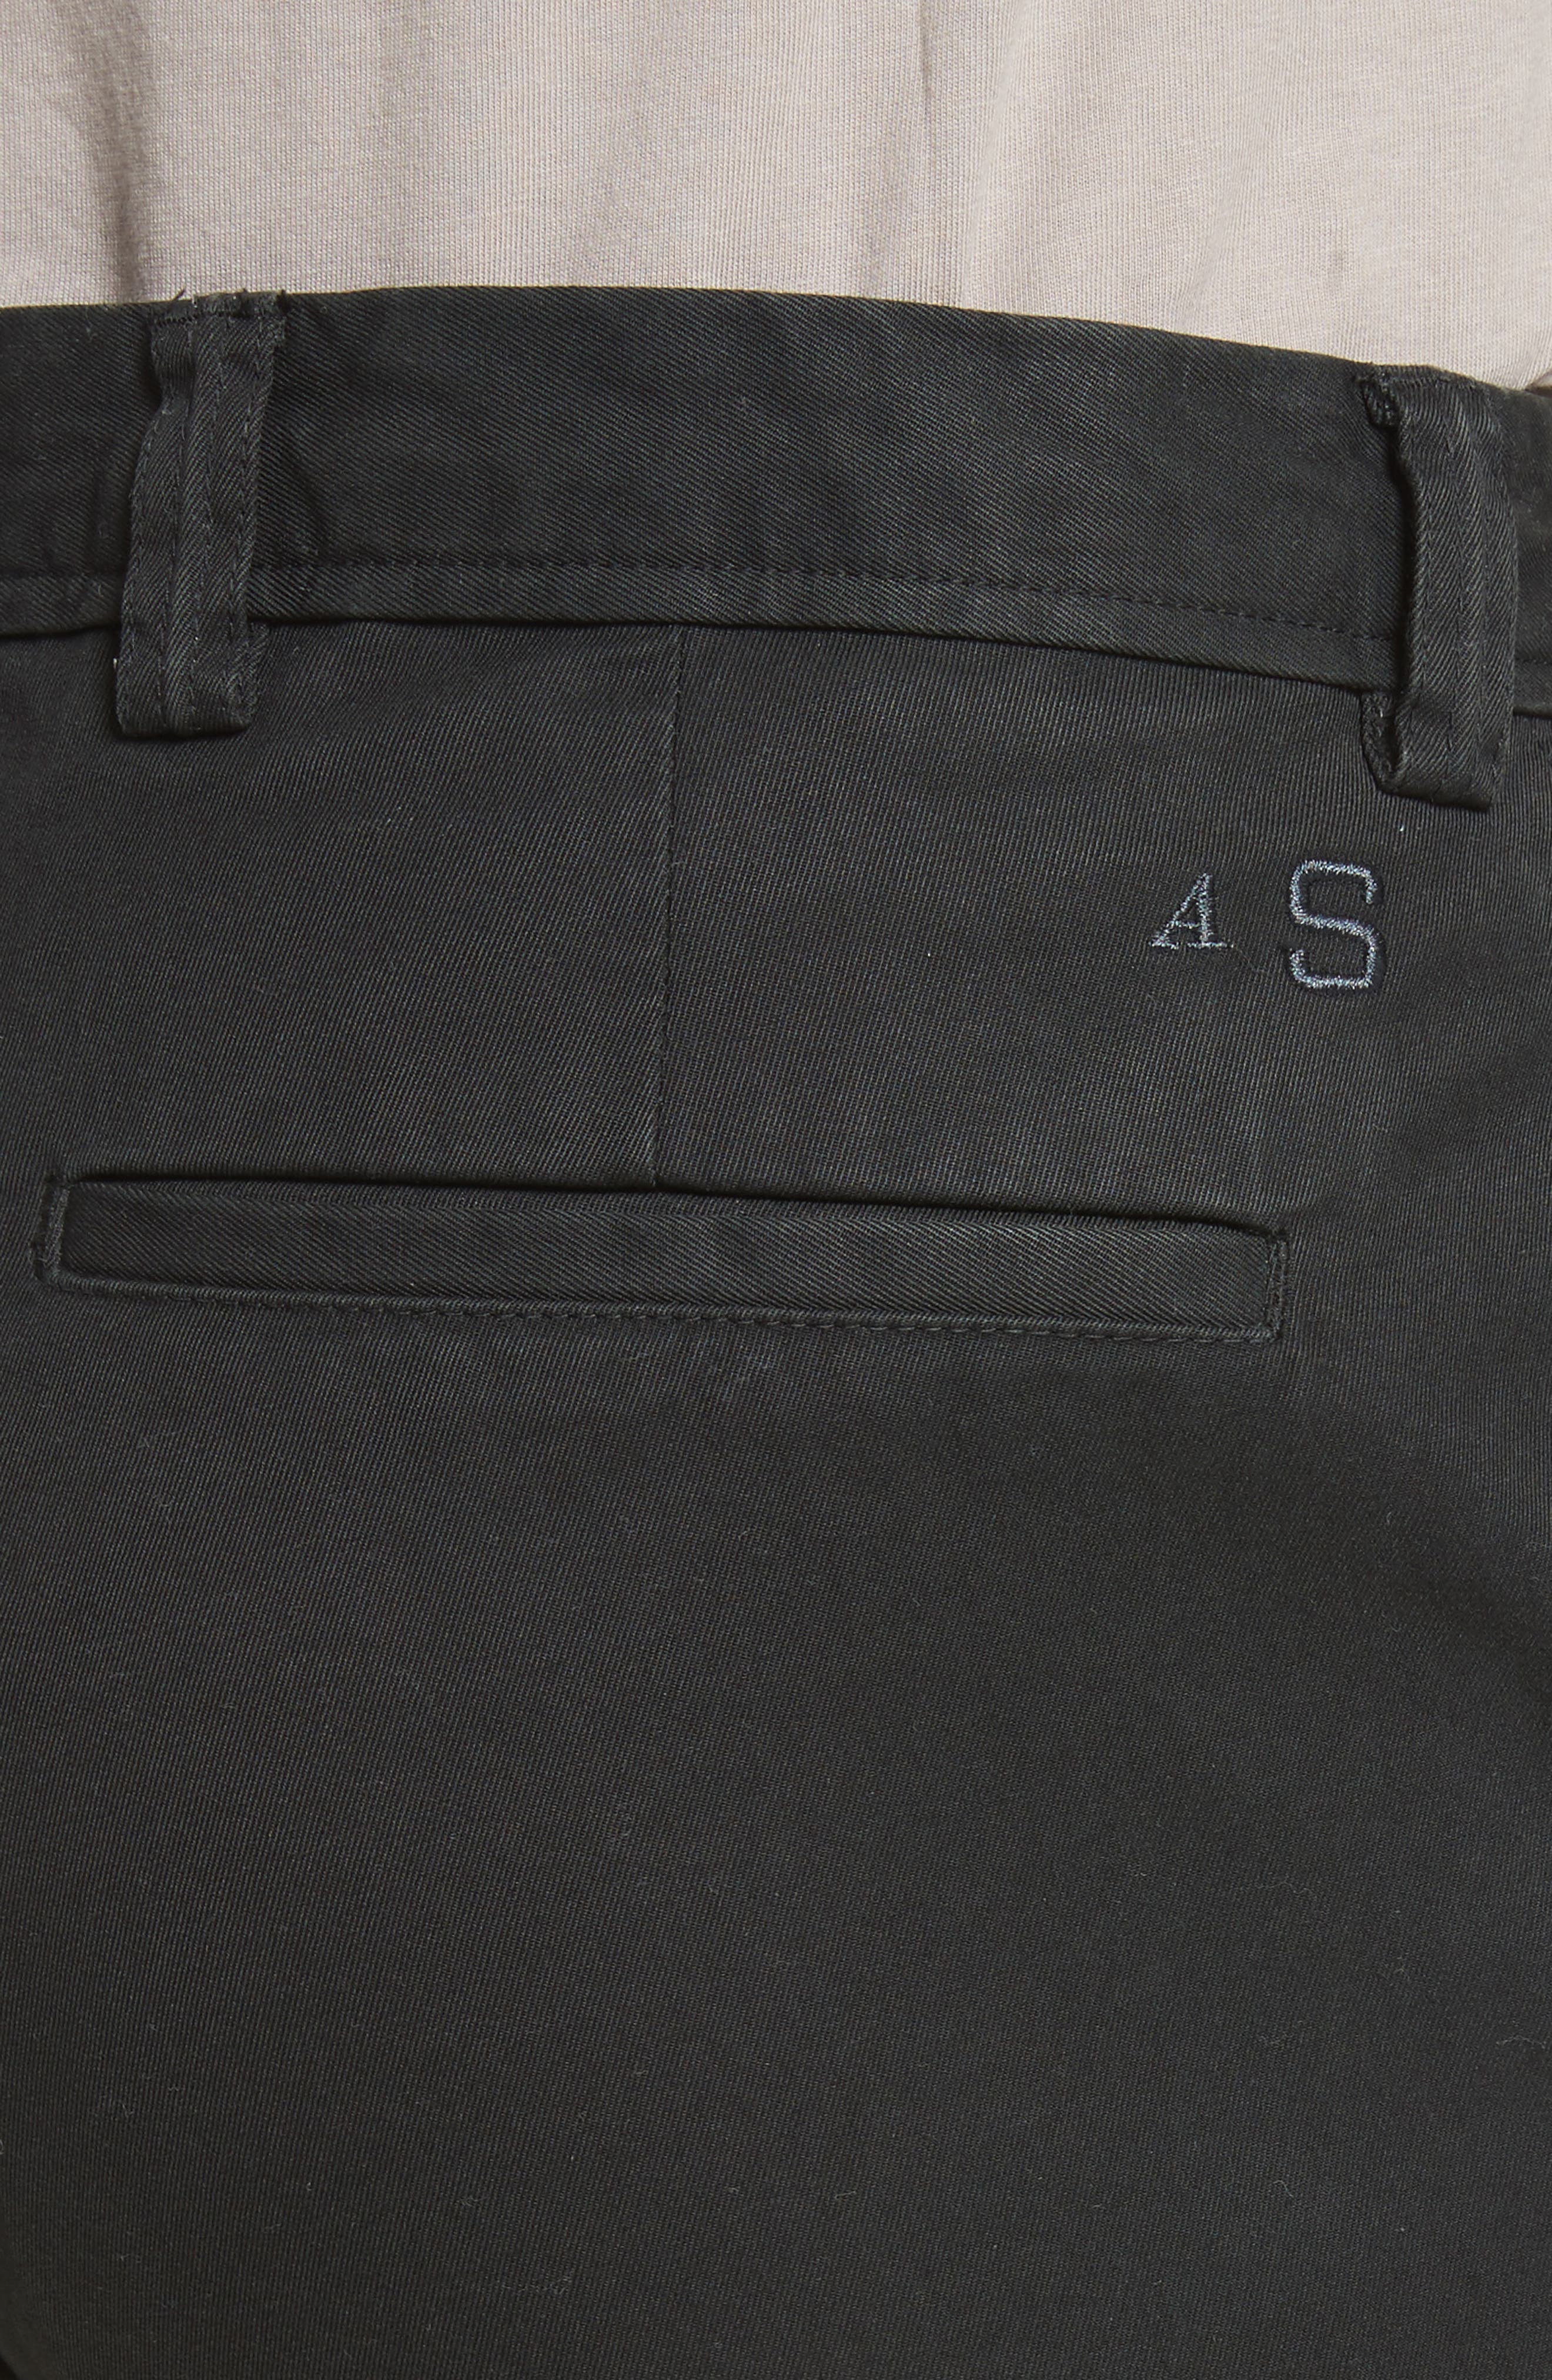 Isher Chinos,                             Alternate thumbnail 4, color,                             Coal Black